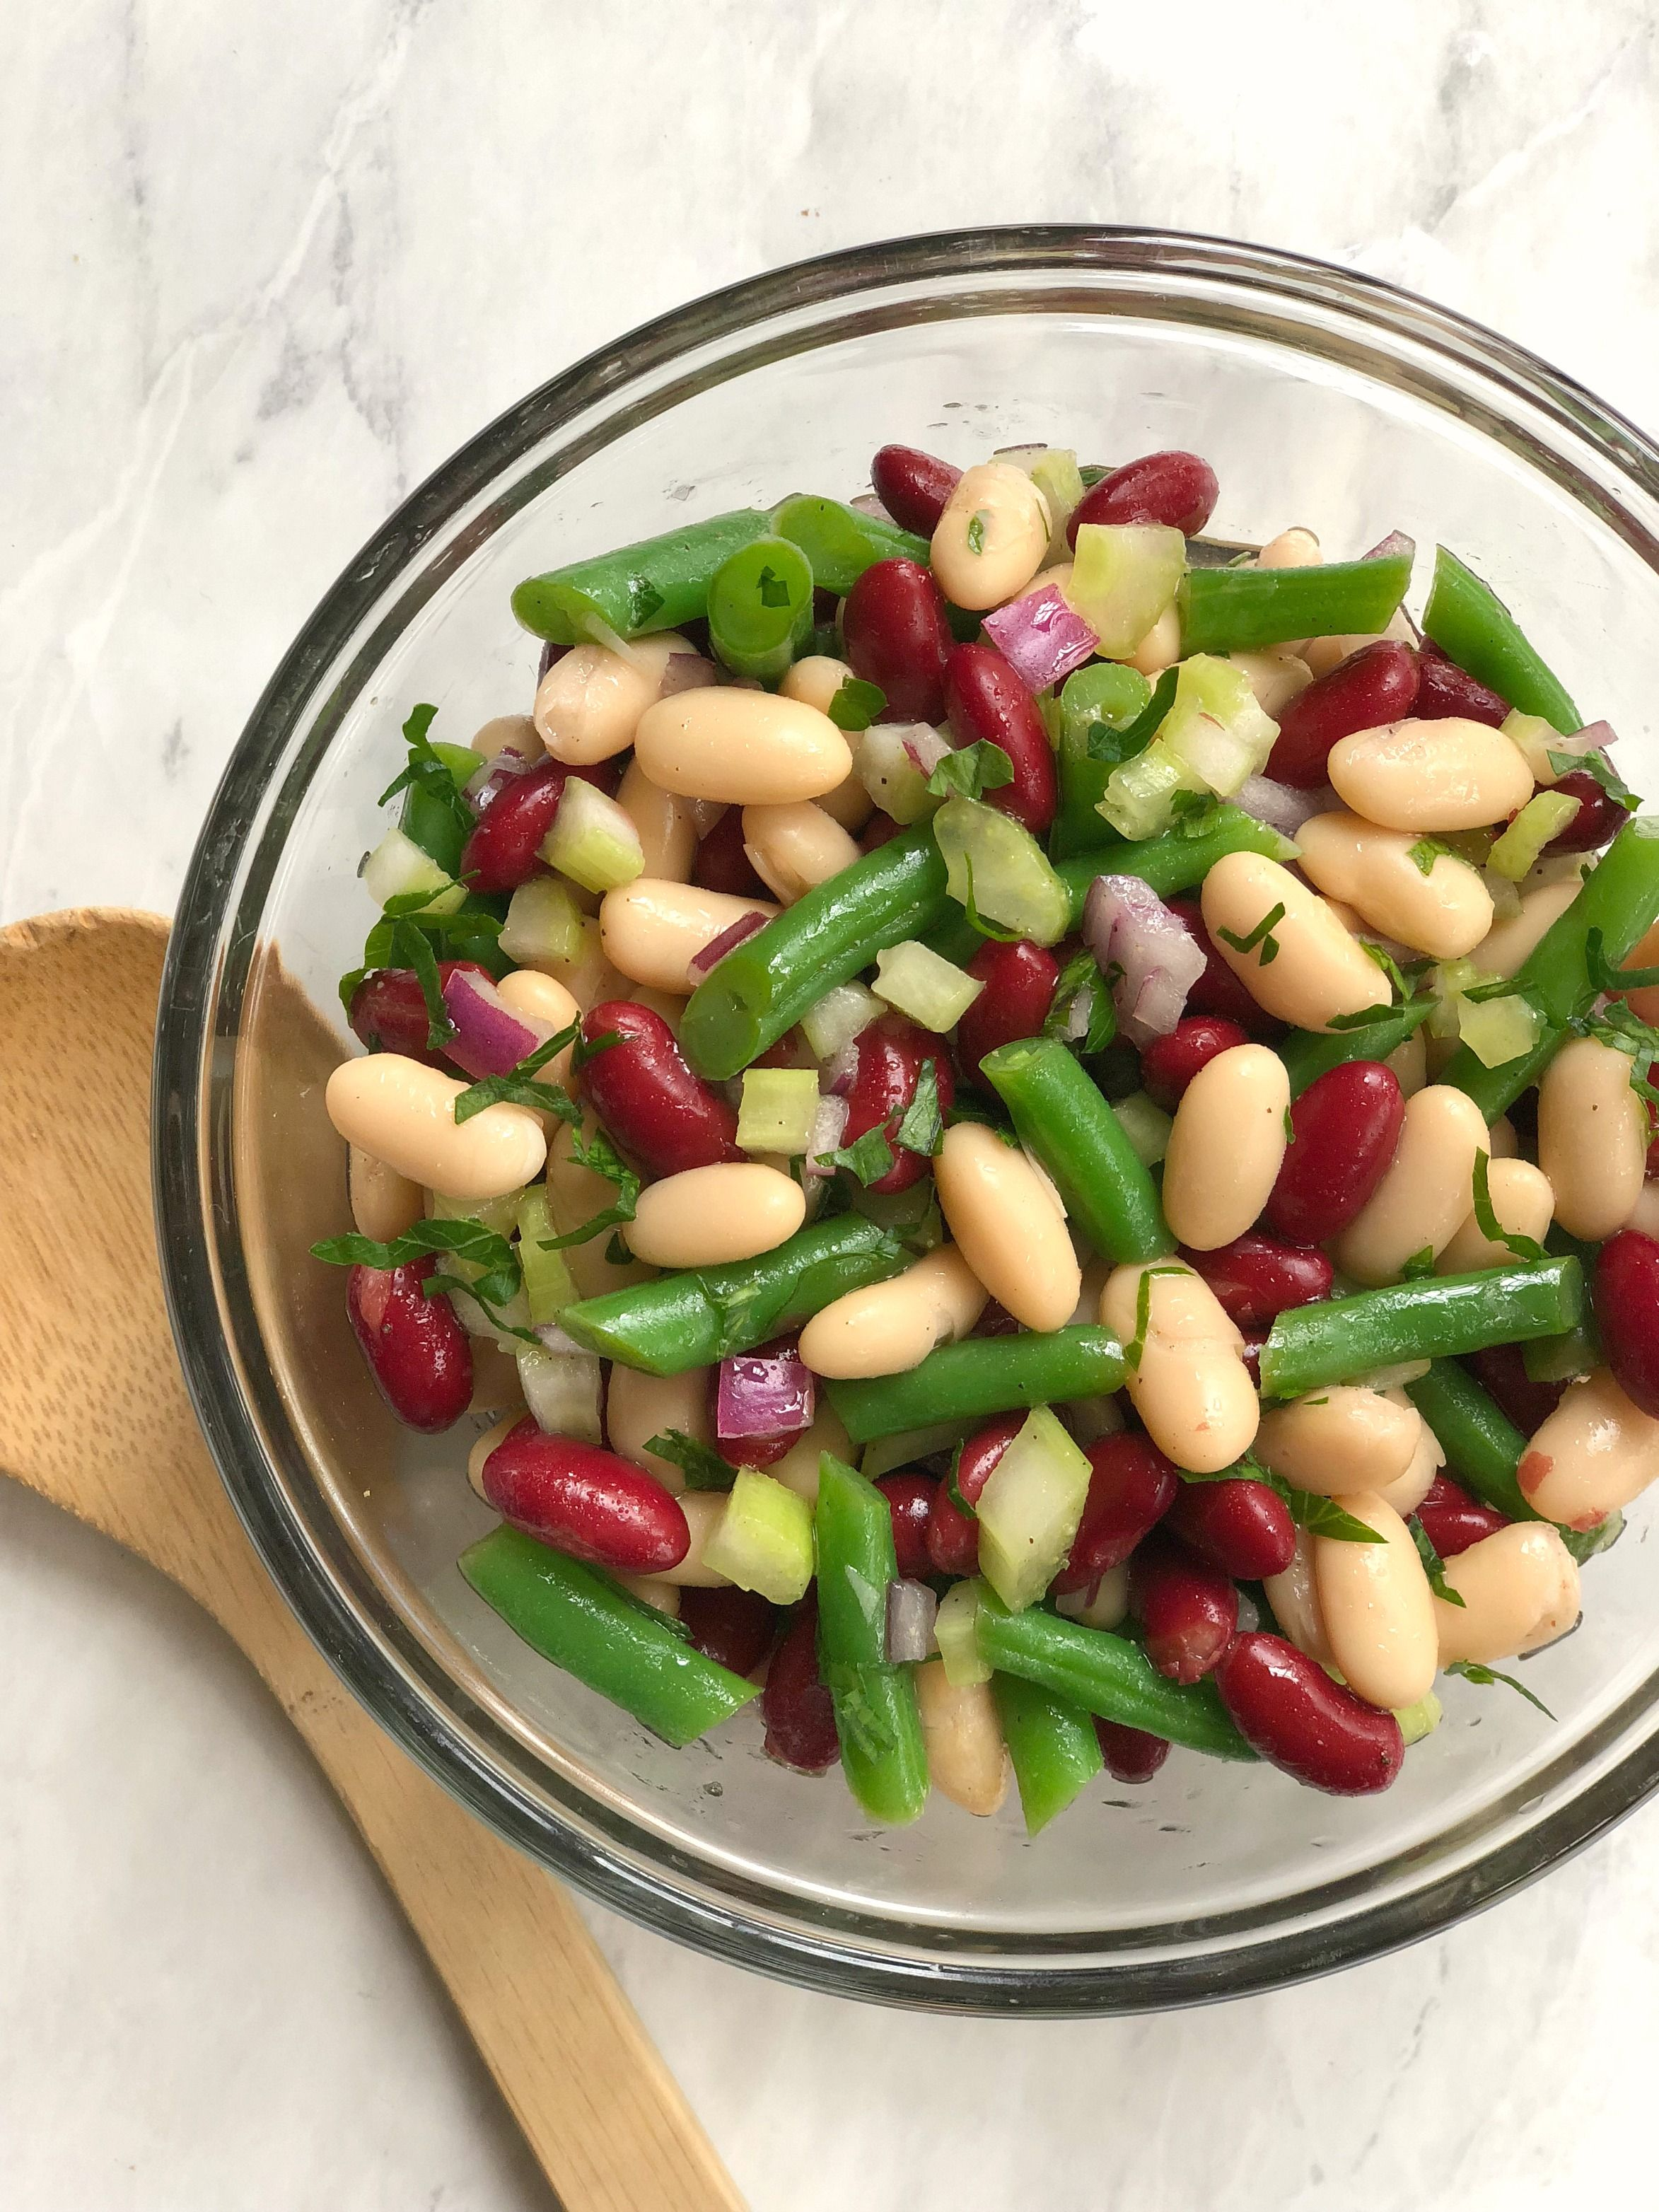 Three Bean Salad Is A Classic Dish That S Been Served At Covered Dish Suppers And Picnics For Years It S Rea Bean Salad Three Bean Salad Blanching Green Beans